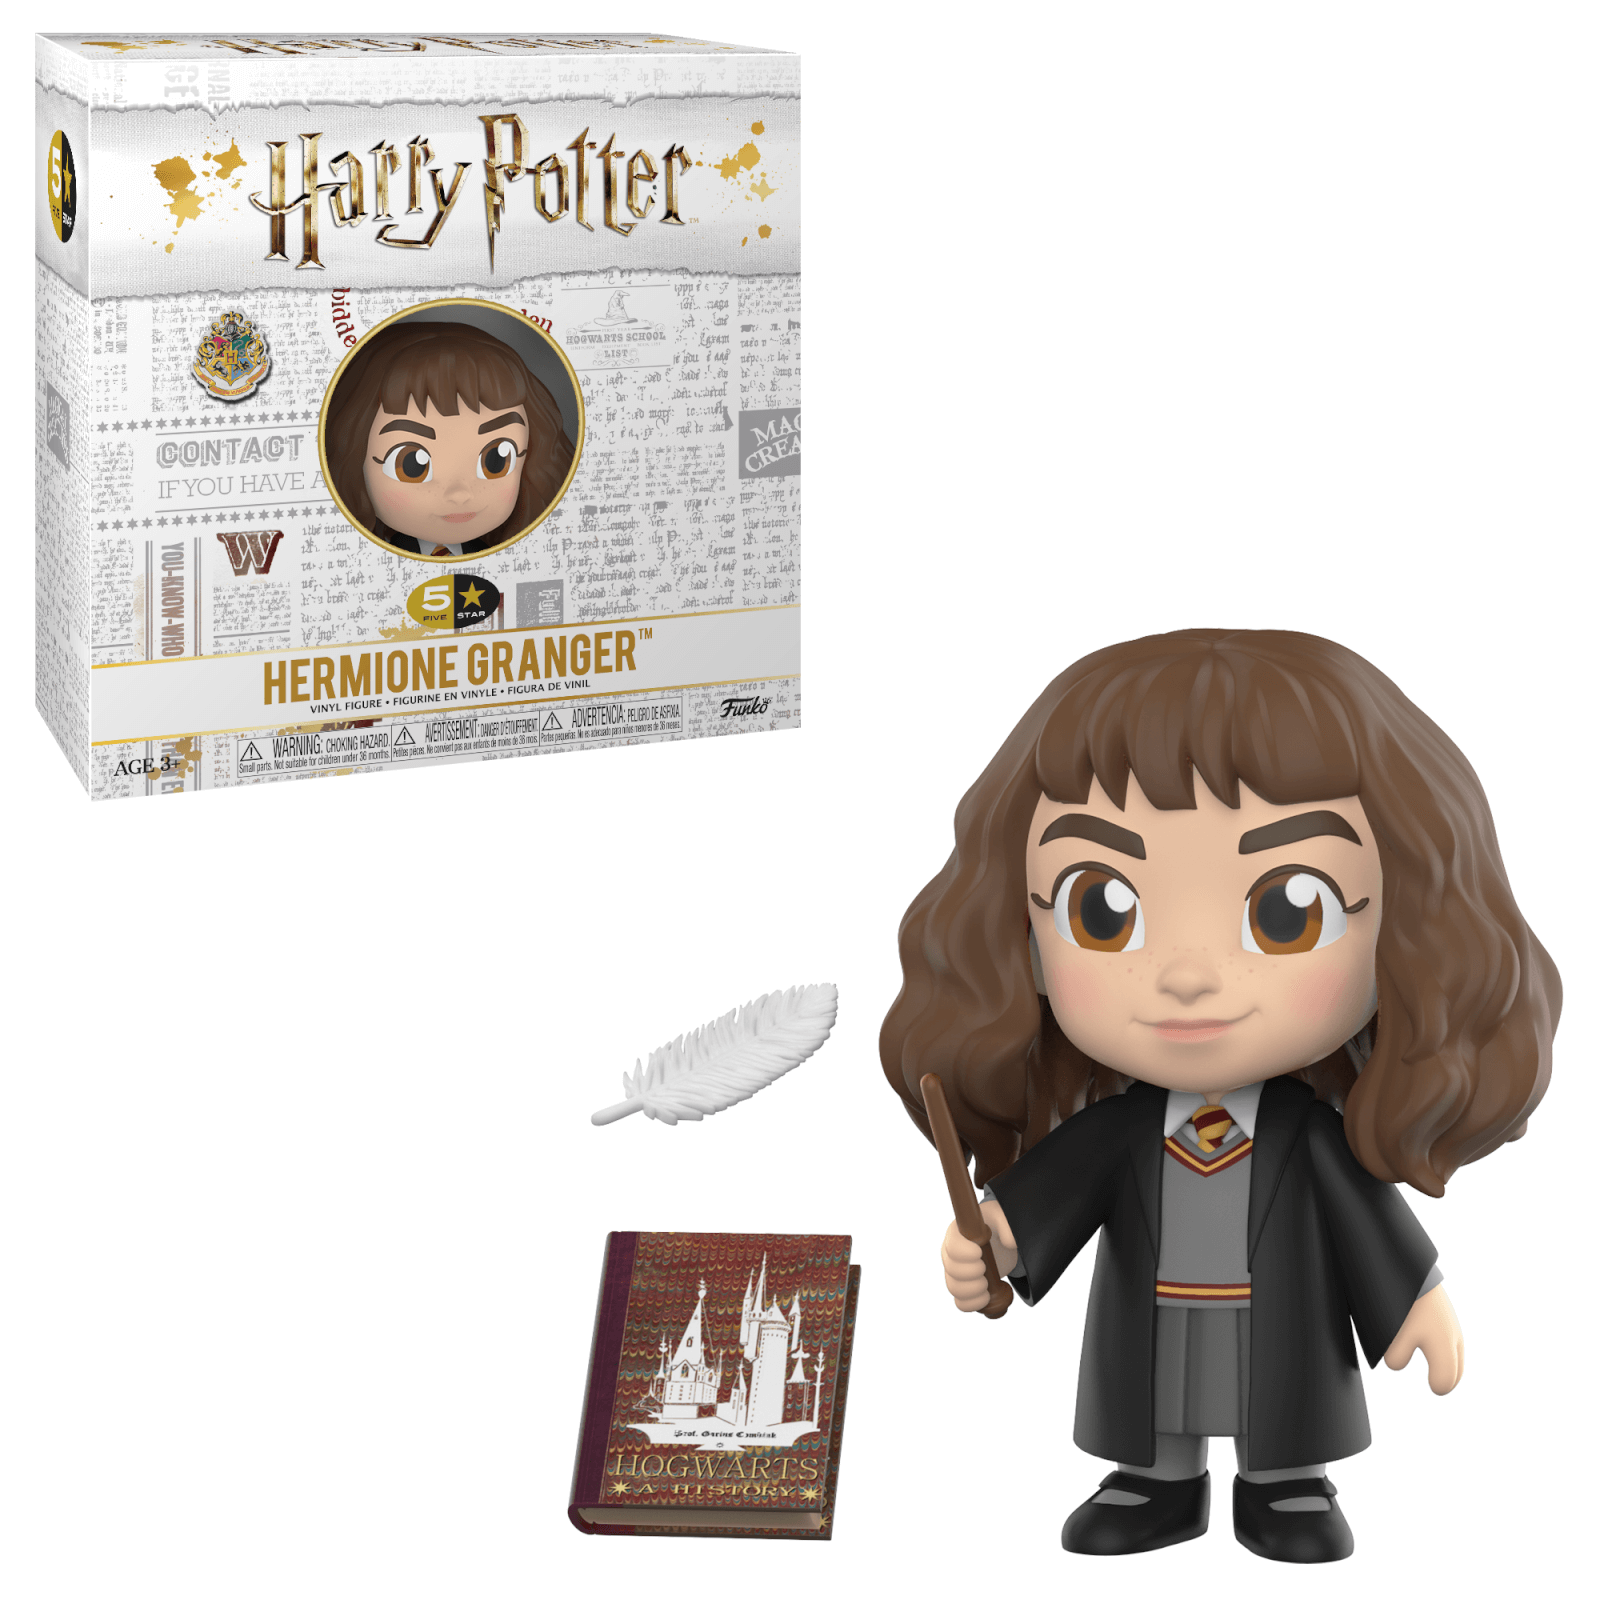 5 Star Harry Potter Hermione Granger Vinyl Figure